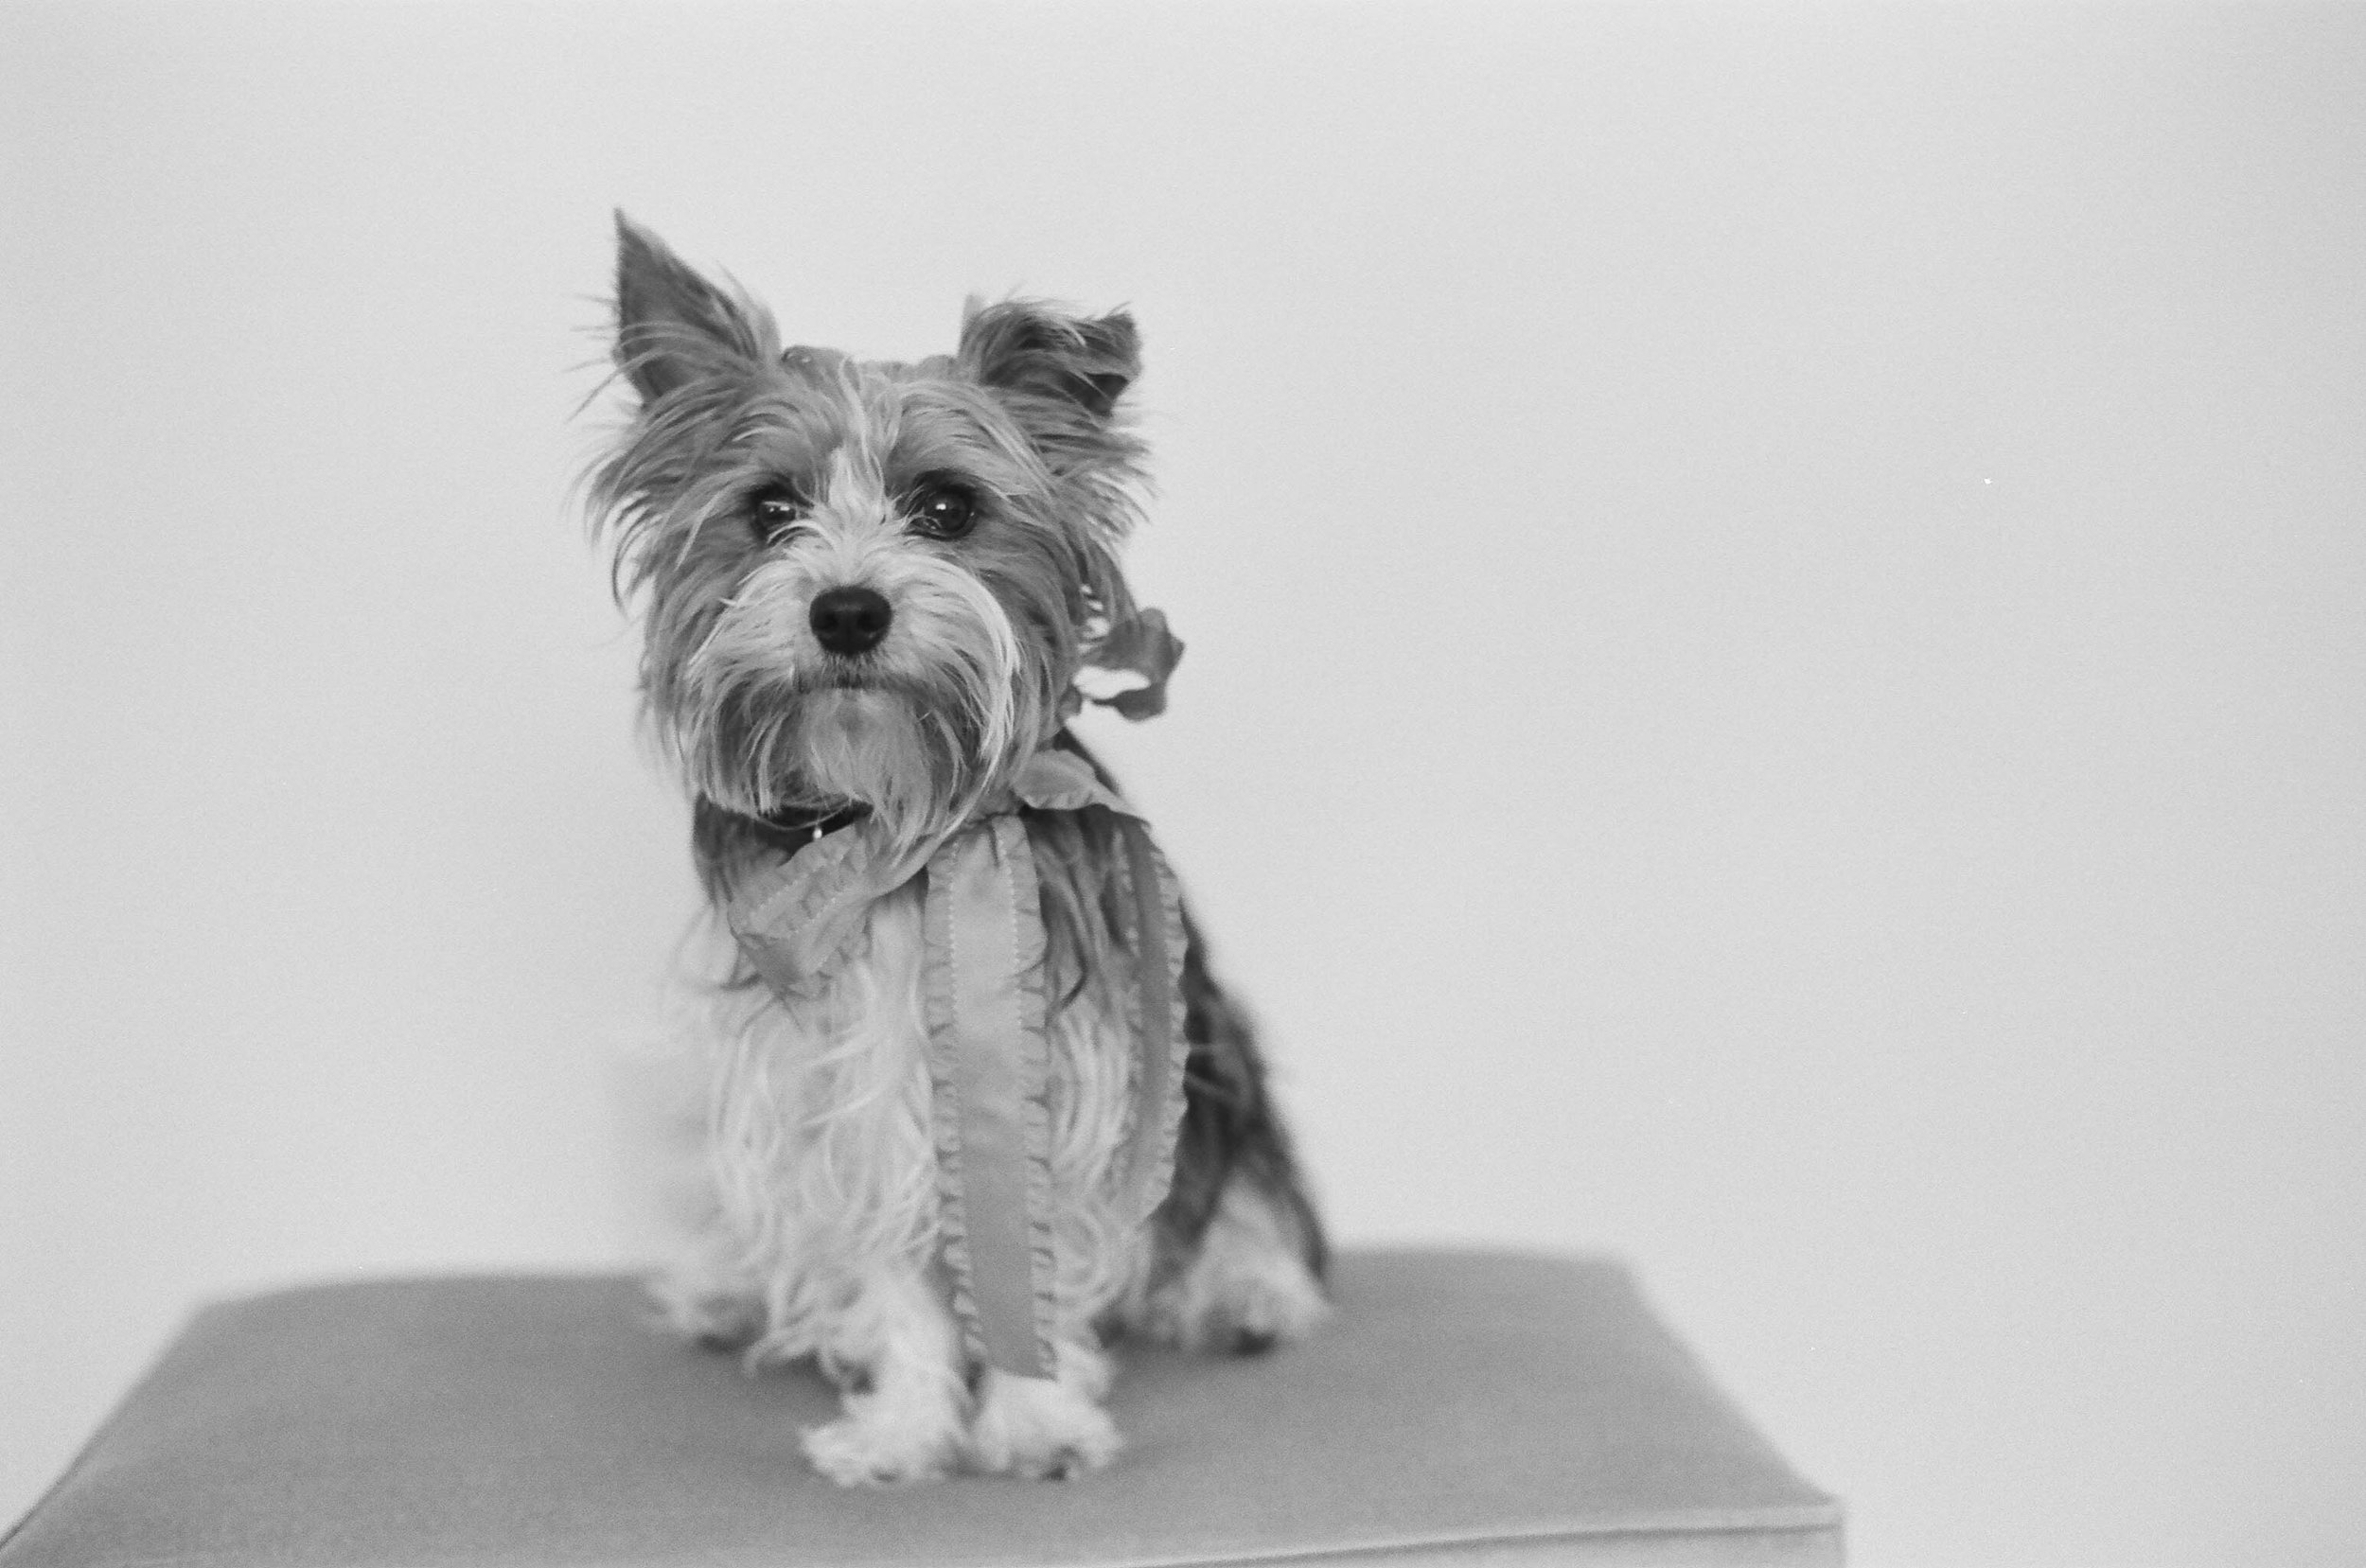 Yorshire terrier posing for a portrait.